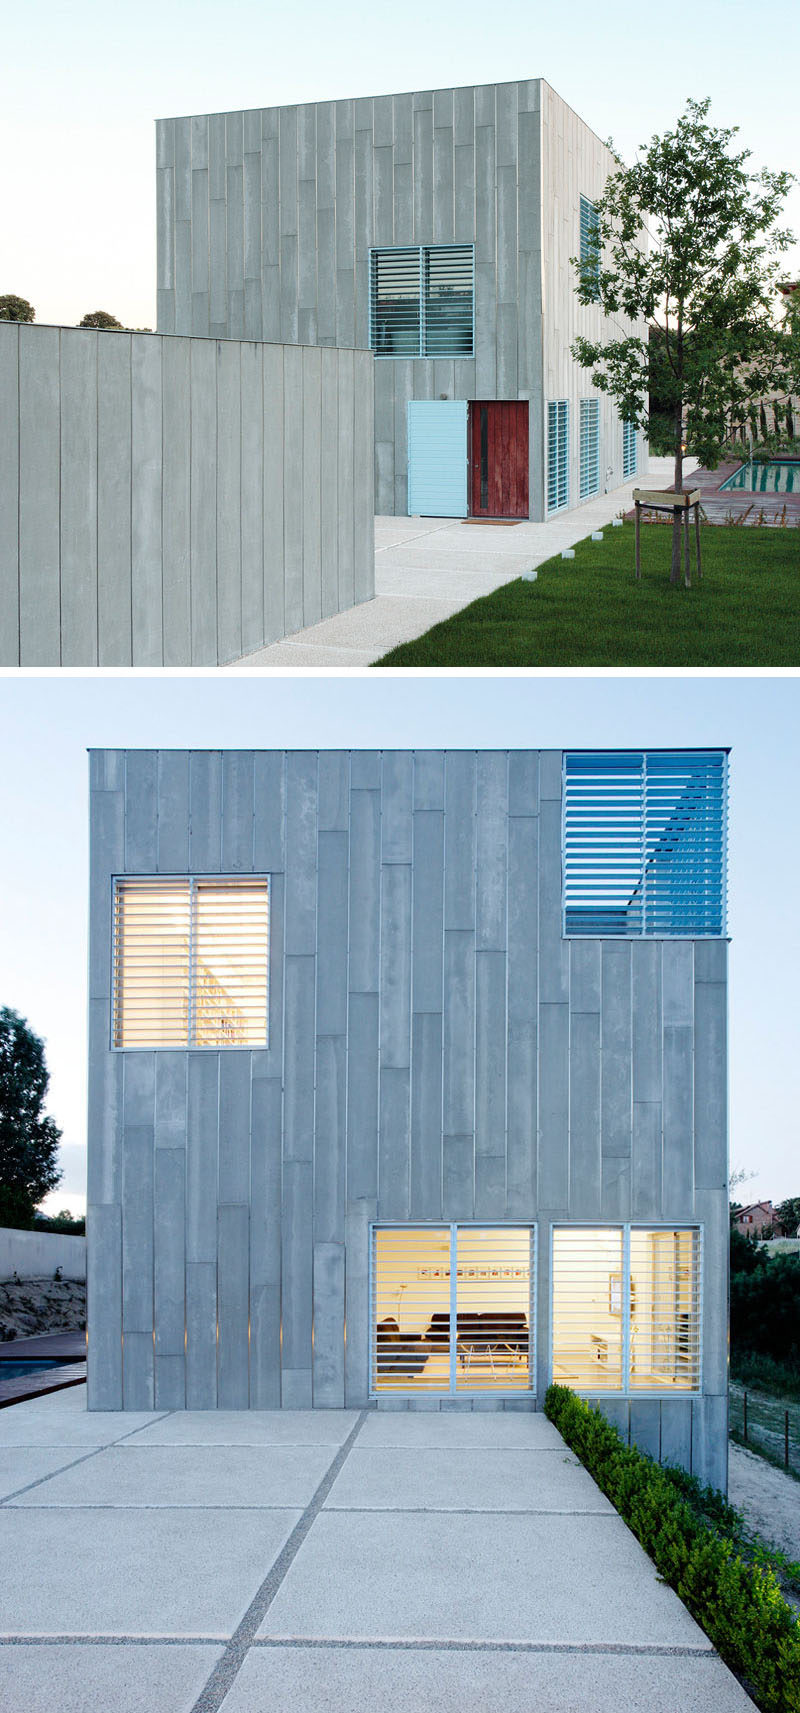 12 Minimalist Modern House Exteriors // Grey siding covers this exterior of this home that features light blue shutters to create a playful yet minimal appearance.